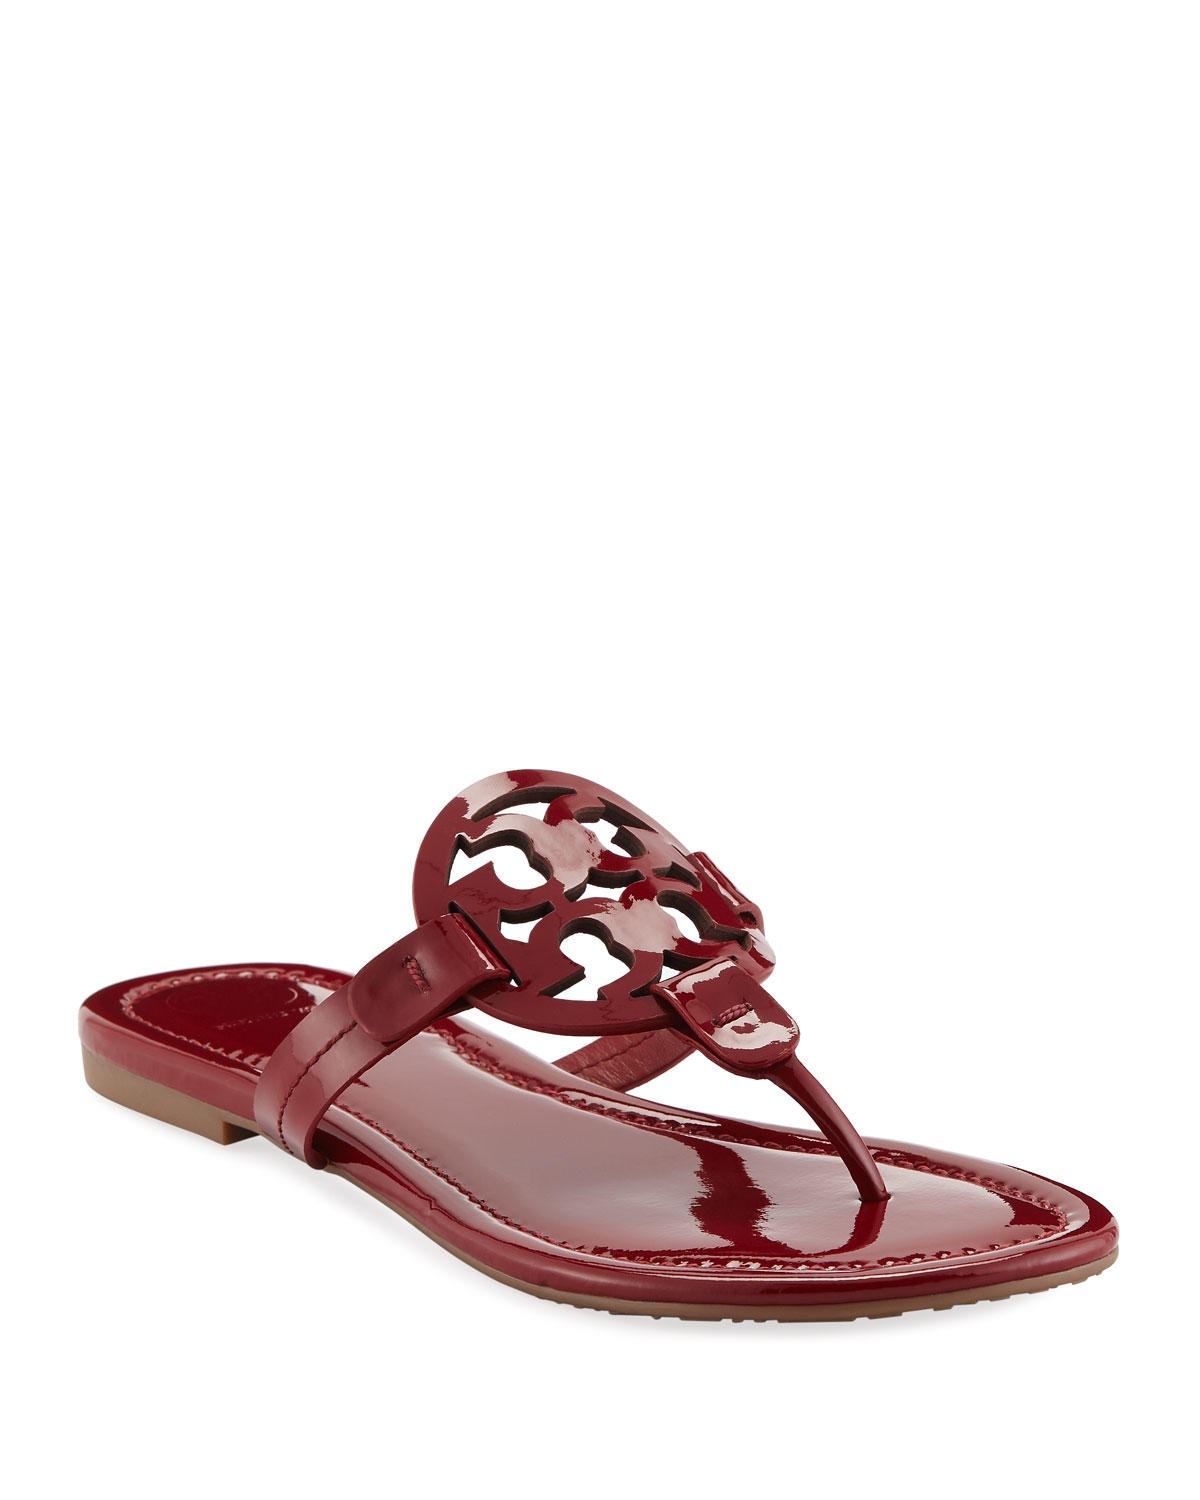 754efc79c Tory Burch Miller Medallion Patent Leather Flat Thong Sandals ...